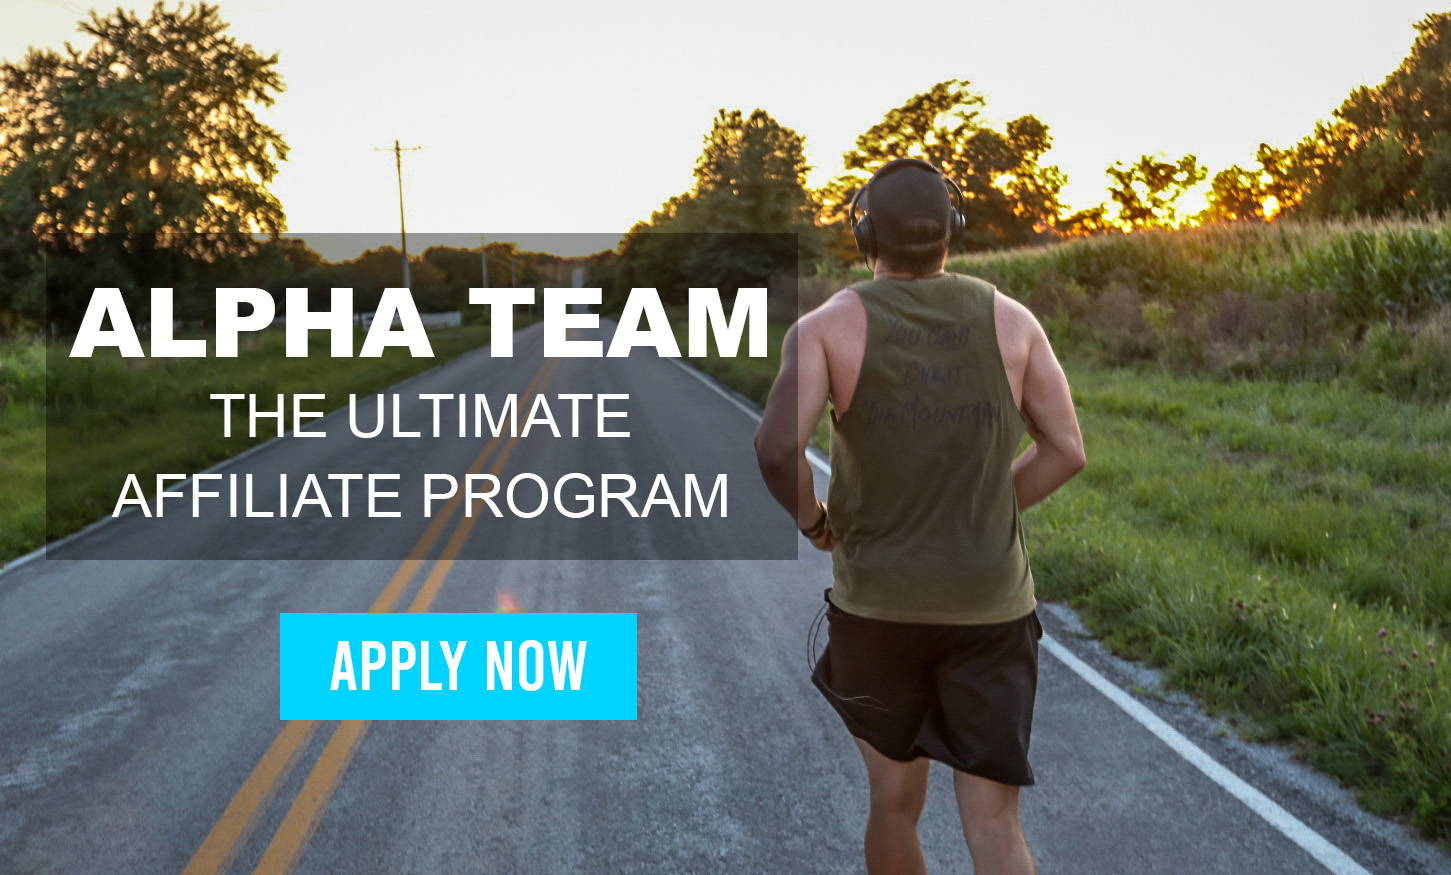 Alpha team affiliate program , man running